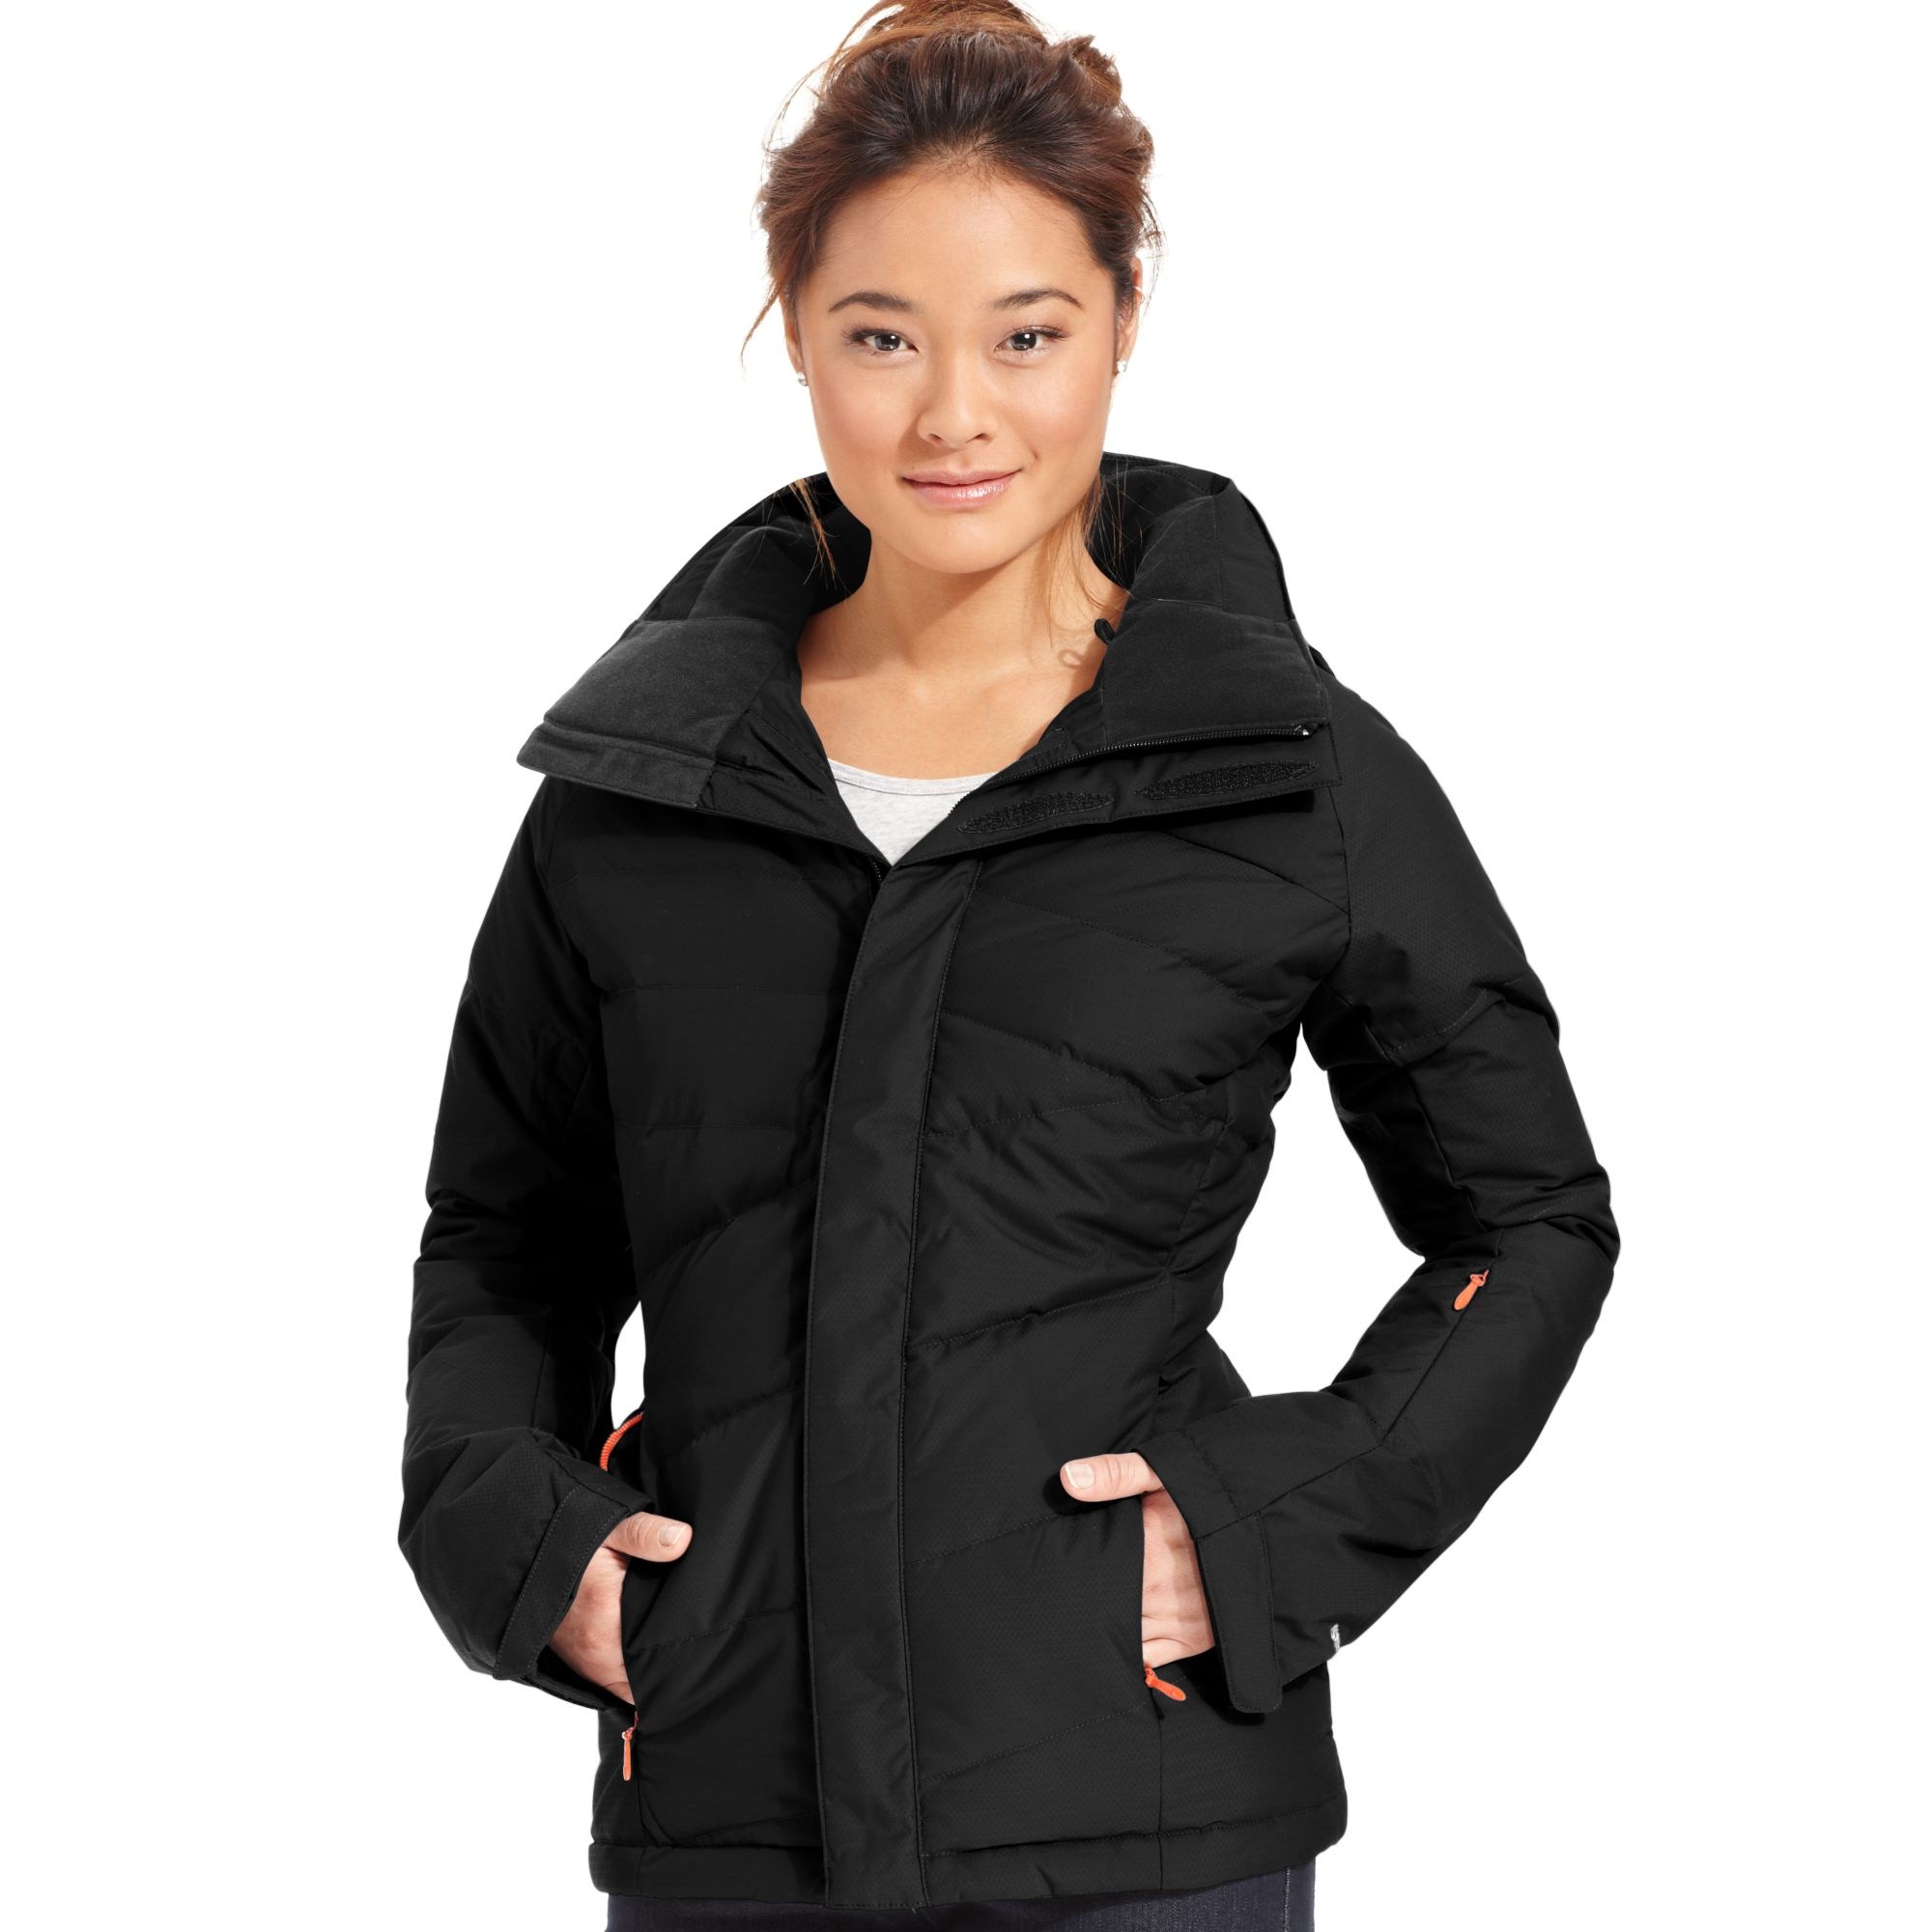 737f2fa53 The North Face Black Heavenly Down Quilted Puffer Ski Jacket